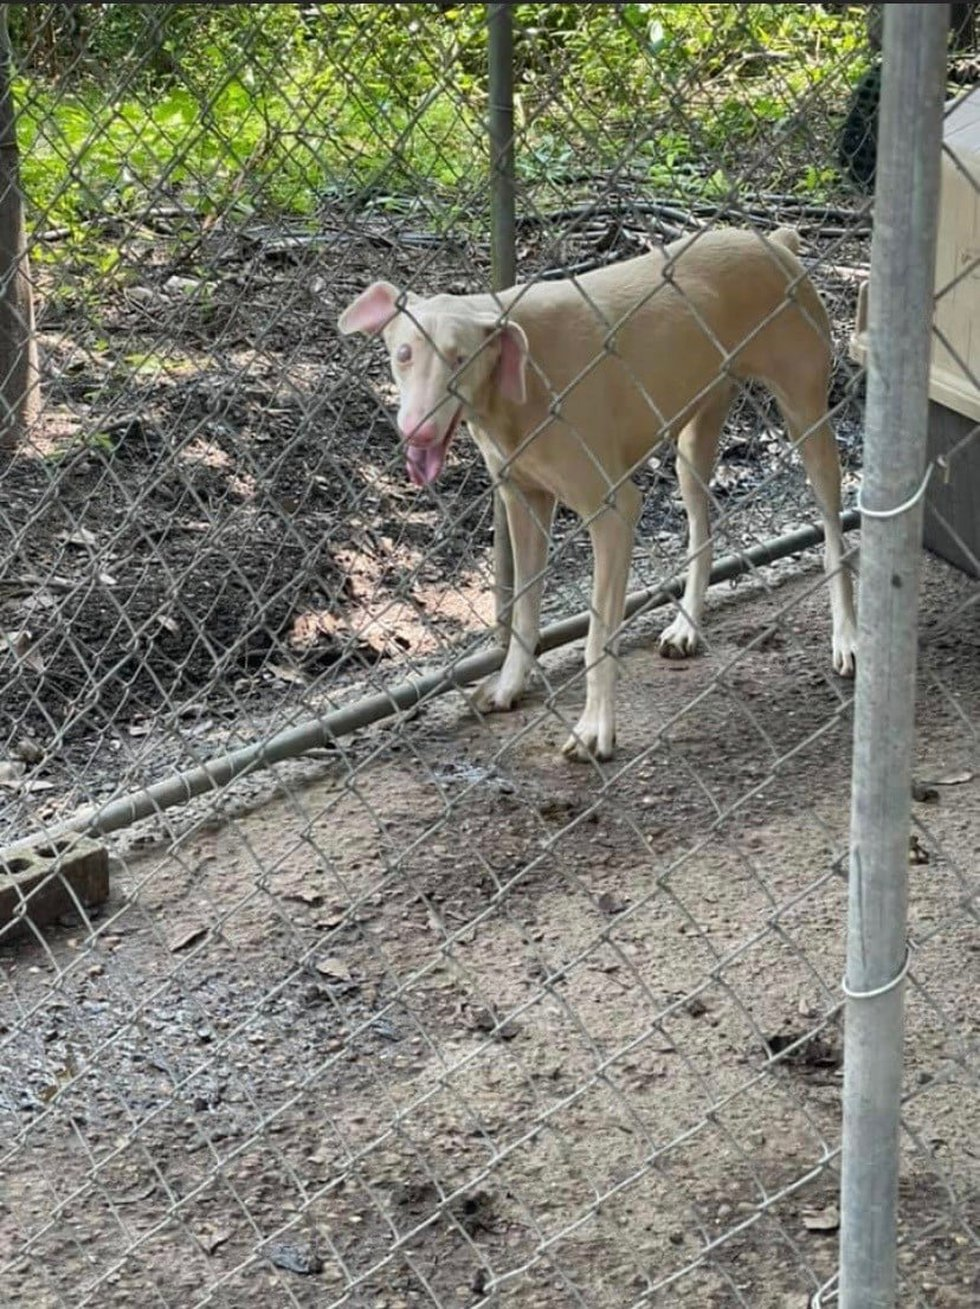 GBHS helps dogs found in puppy mill bust in Louisiana